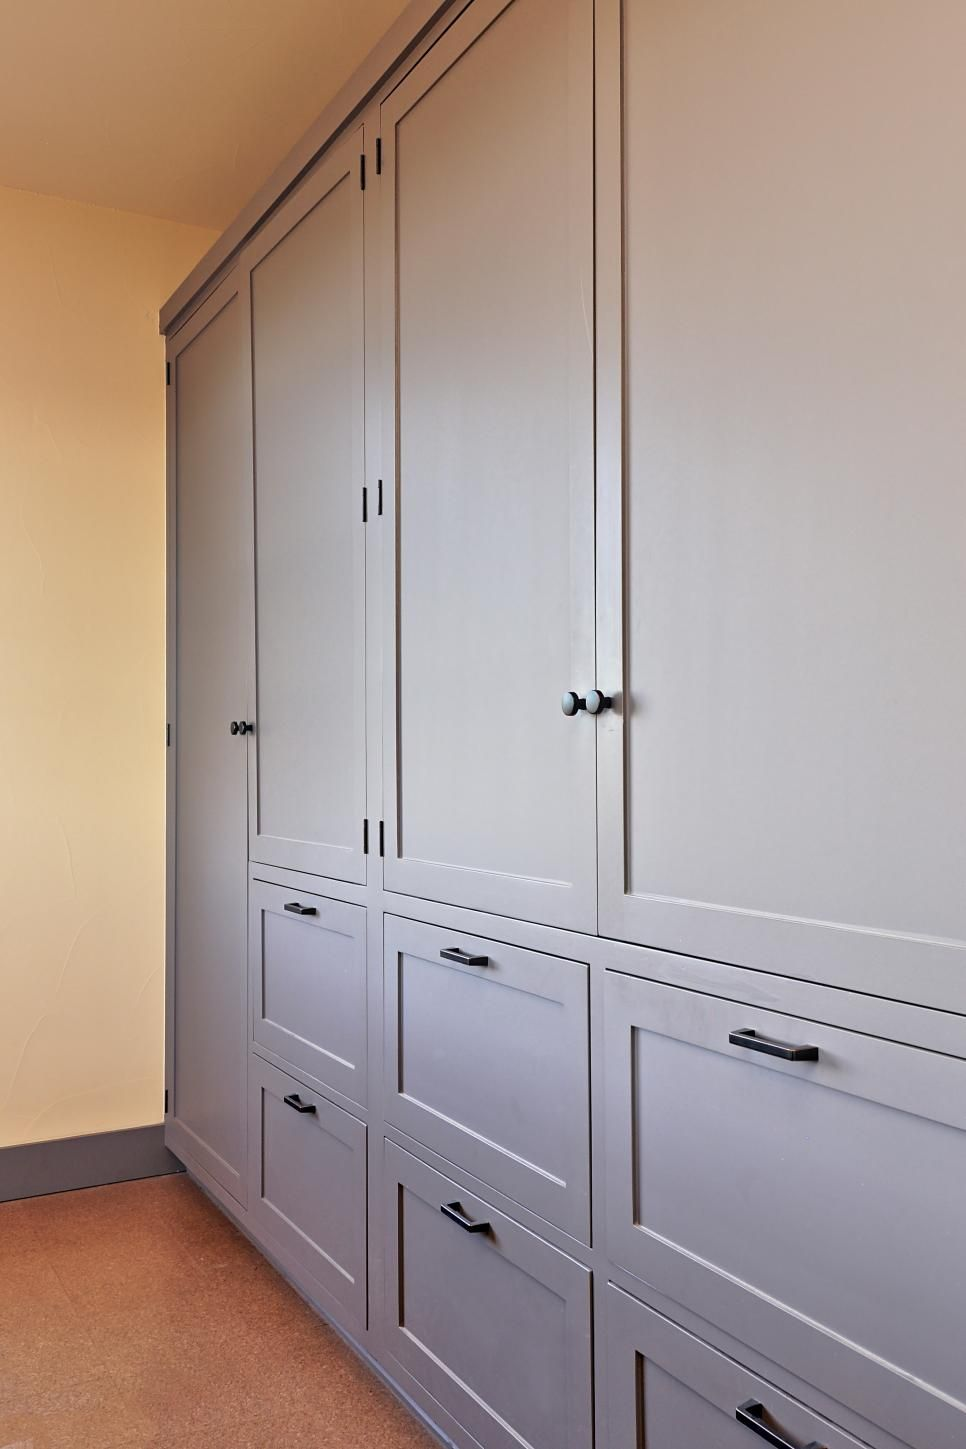 A Wall Of Built In Cabinets Provides Plenty Of Room To Store Clothes And Accessories In The